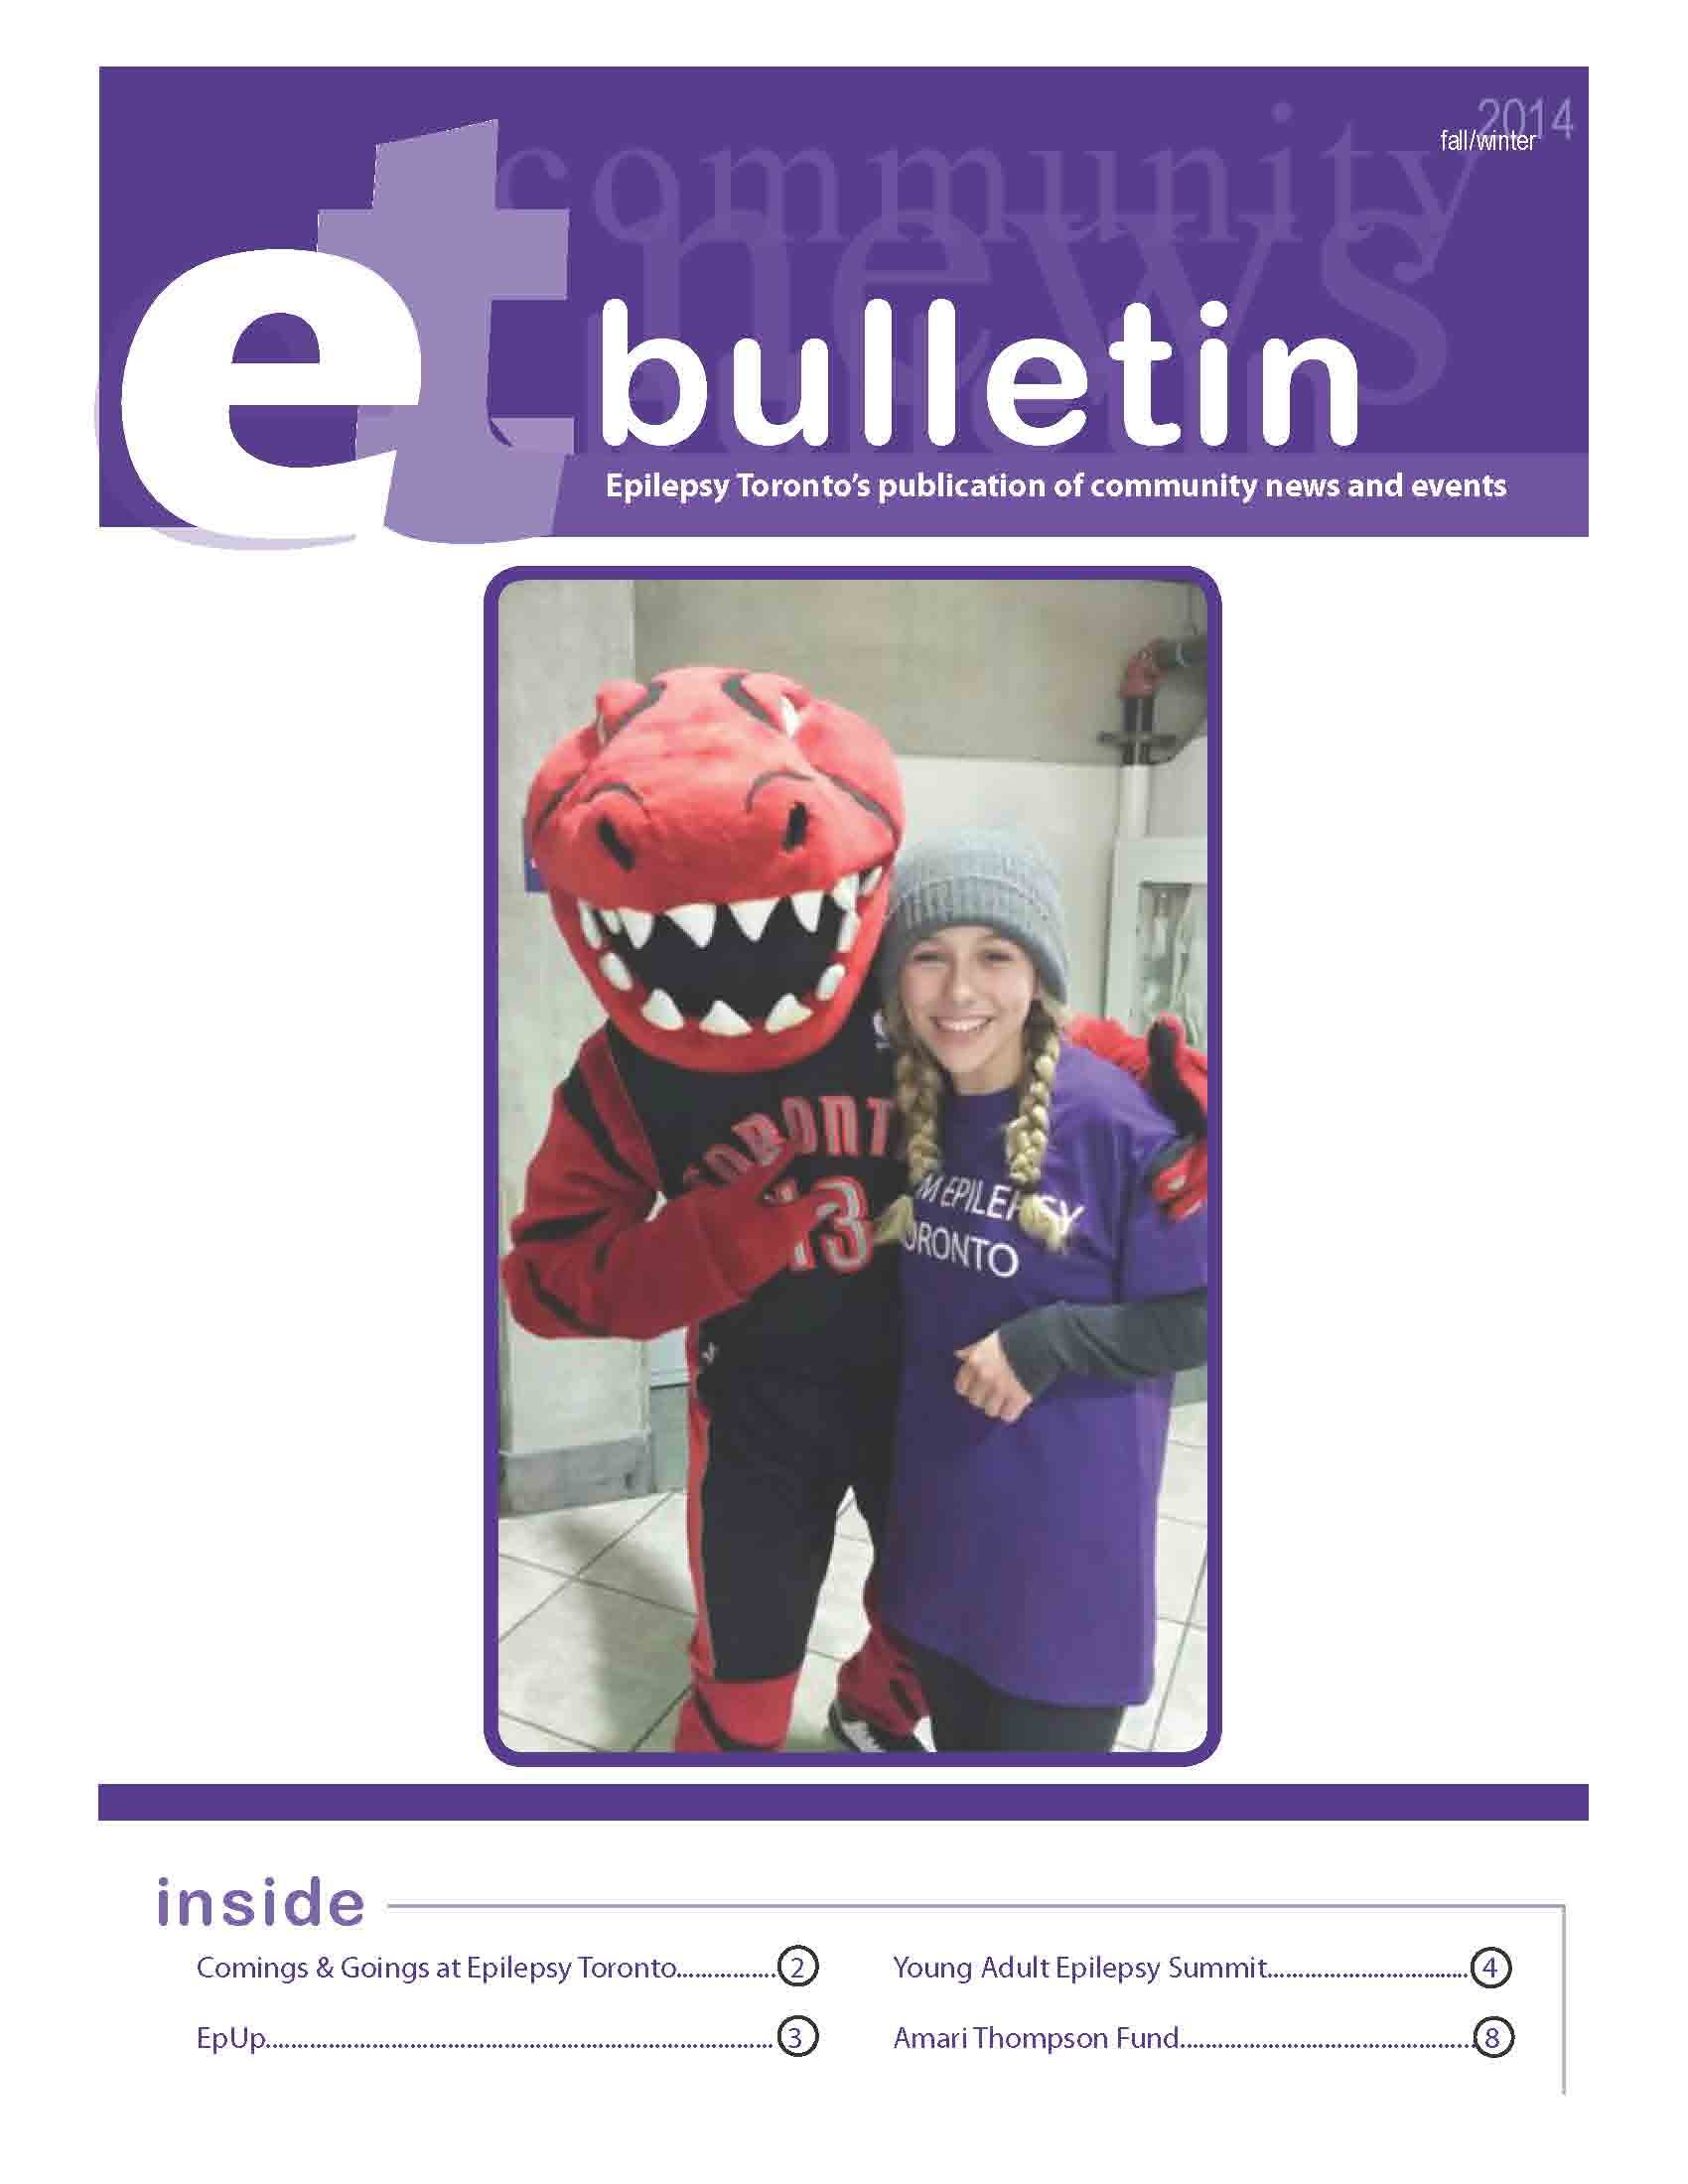 Photo of a woman with Toronto Raptors mascot on a page of 2014 Epilepsy Toronto bulletin